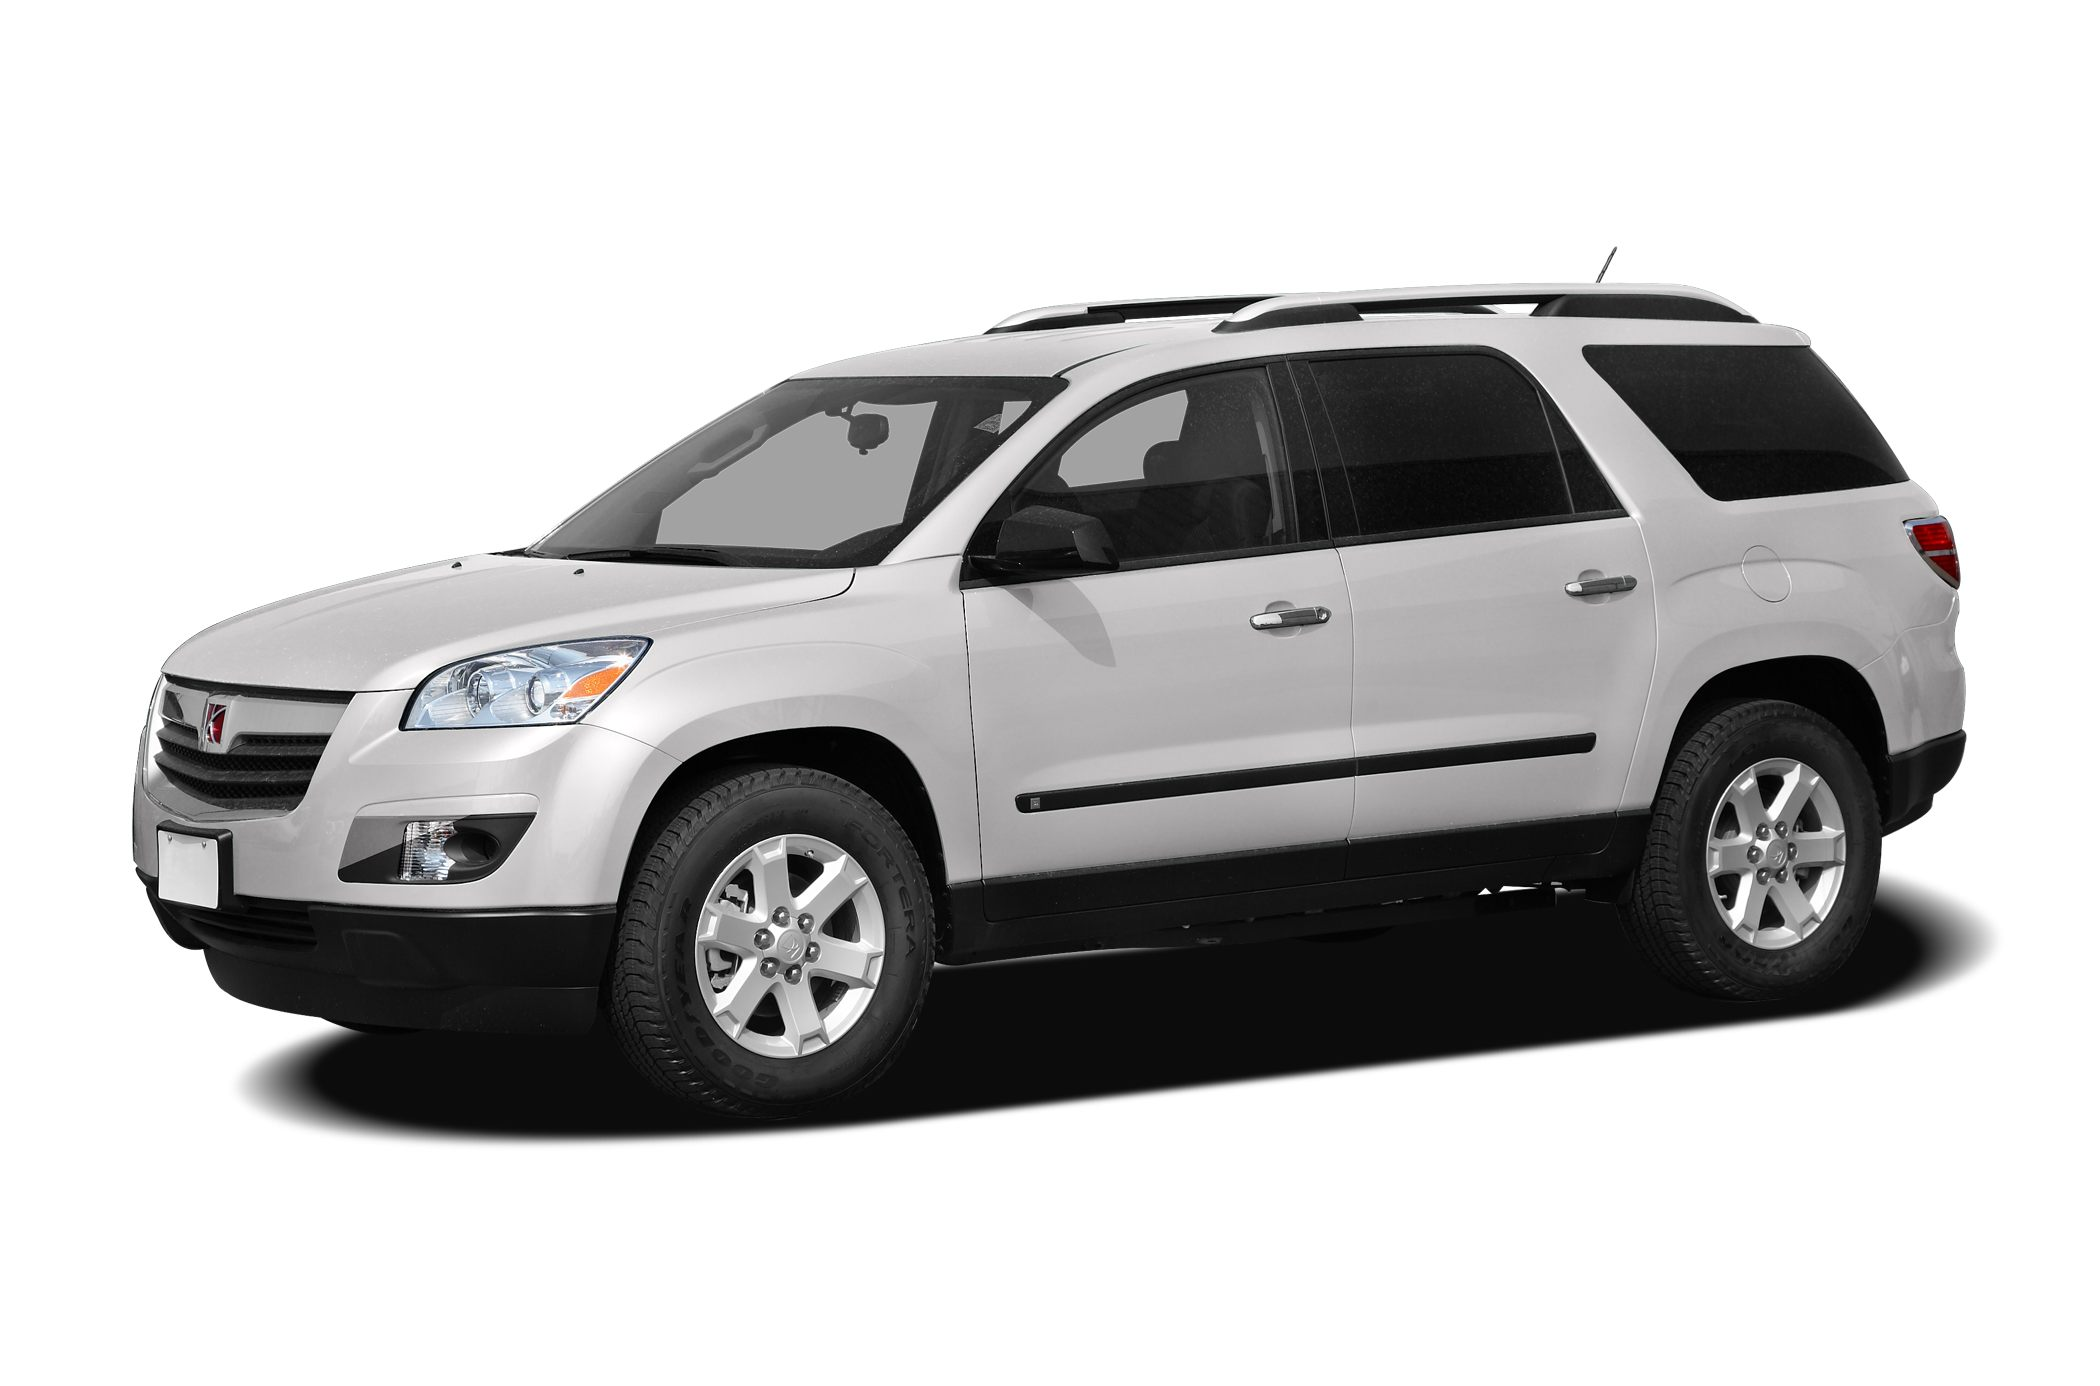 2007 Saturn Outlook XR SUV for sale in Central Square for $0 with 0 miles